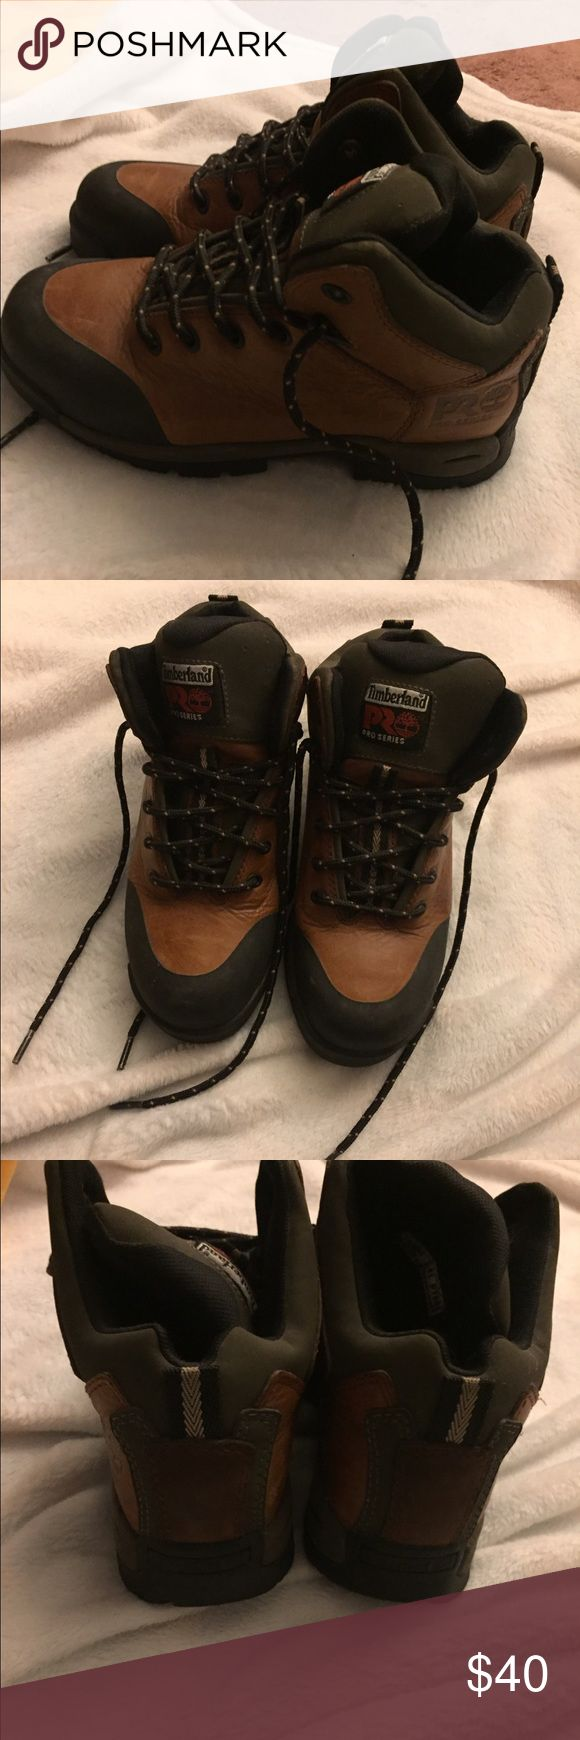 Timberland hiking boots Never worn, only tried on! Comfy hiking boots! Timberland Shoes Lace Up Boots